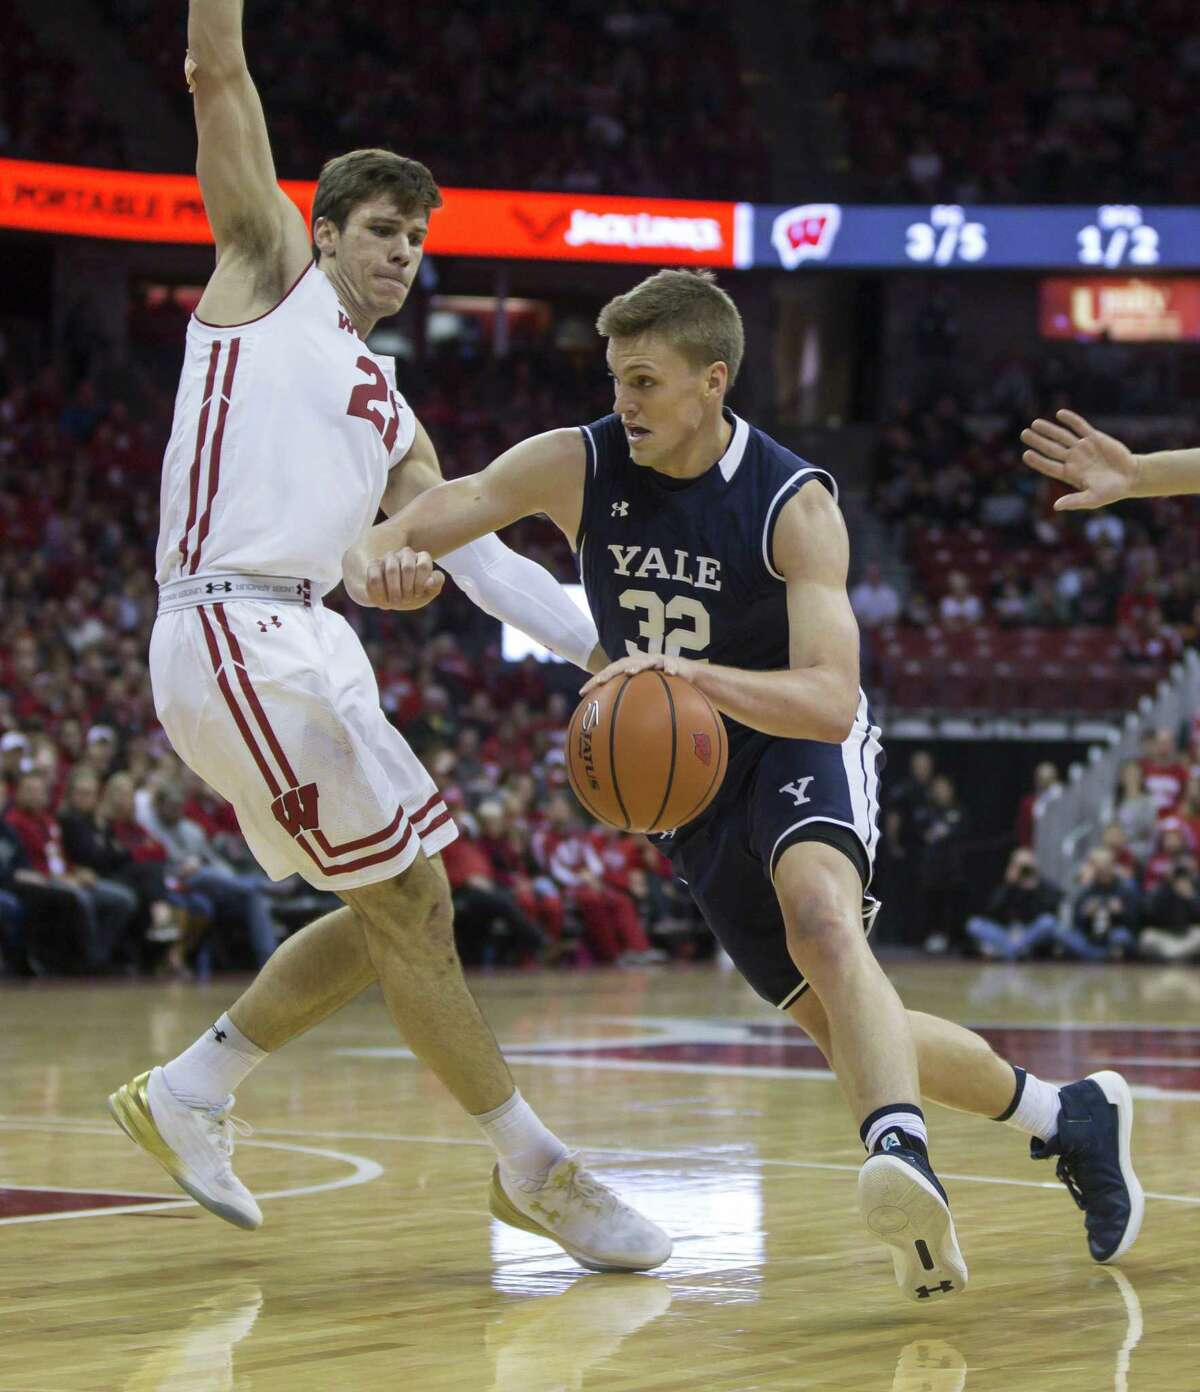 Versatile Blake Reynolds is looking to lead Yale men's basketball team to the Ivy League tournament title and return trip to NCAA tournament.